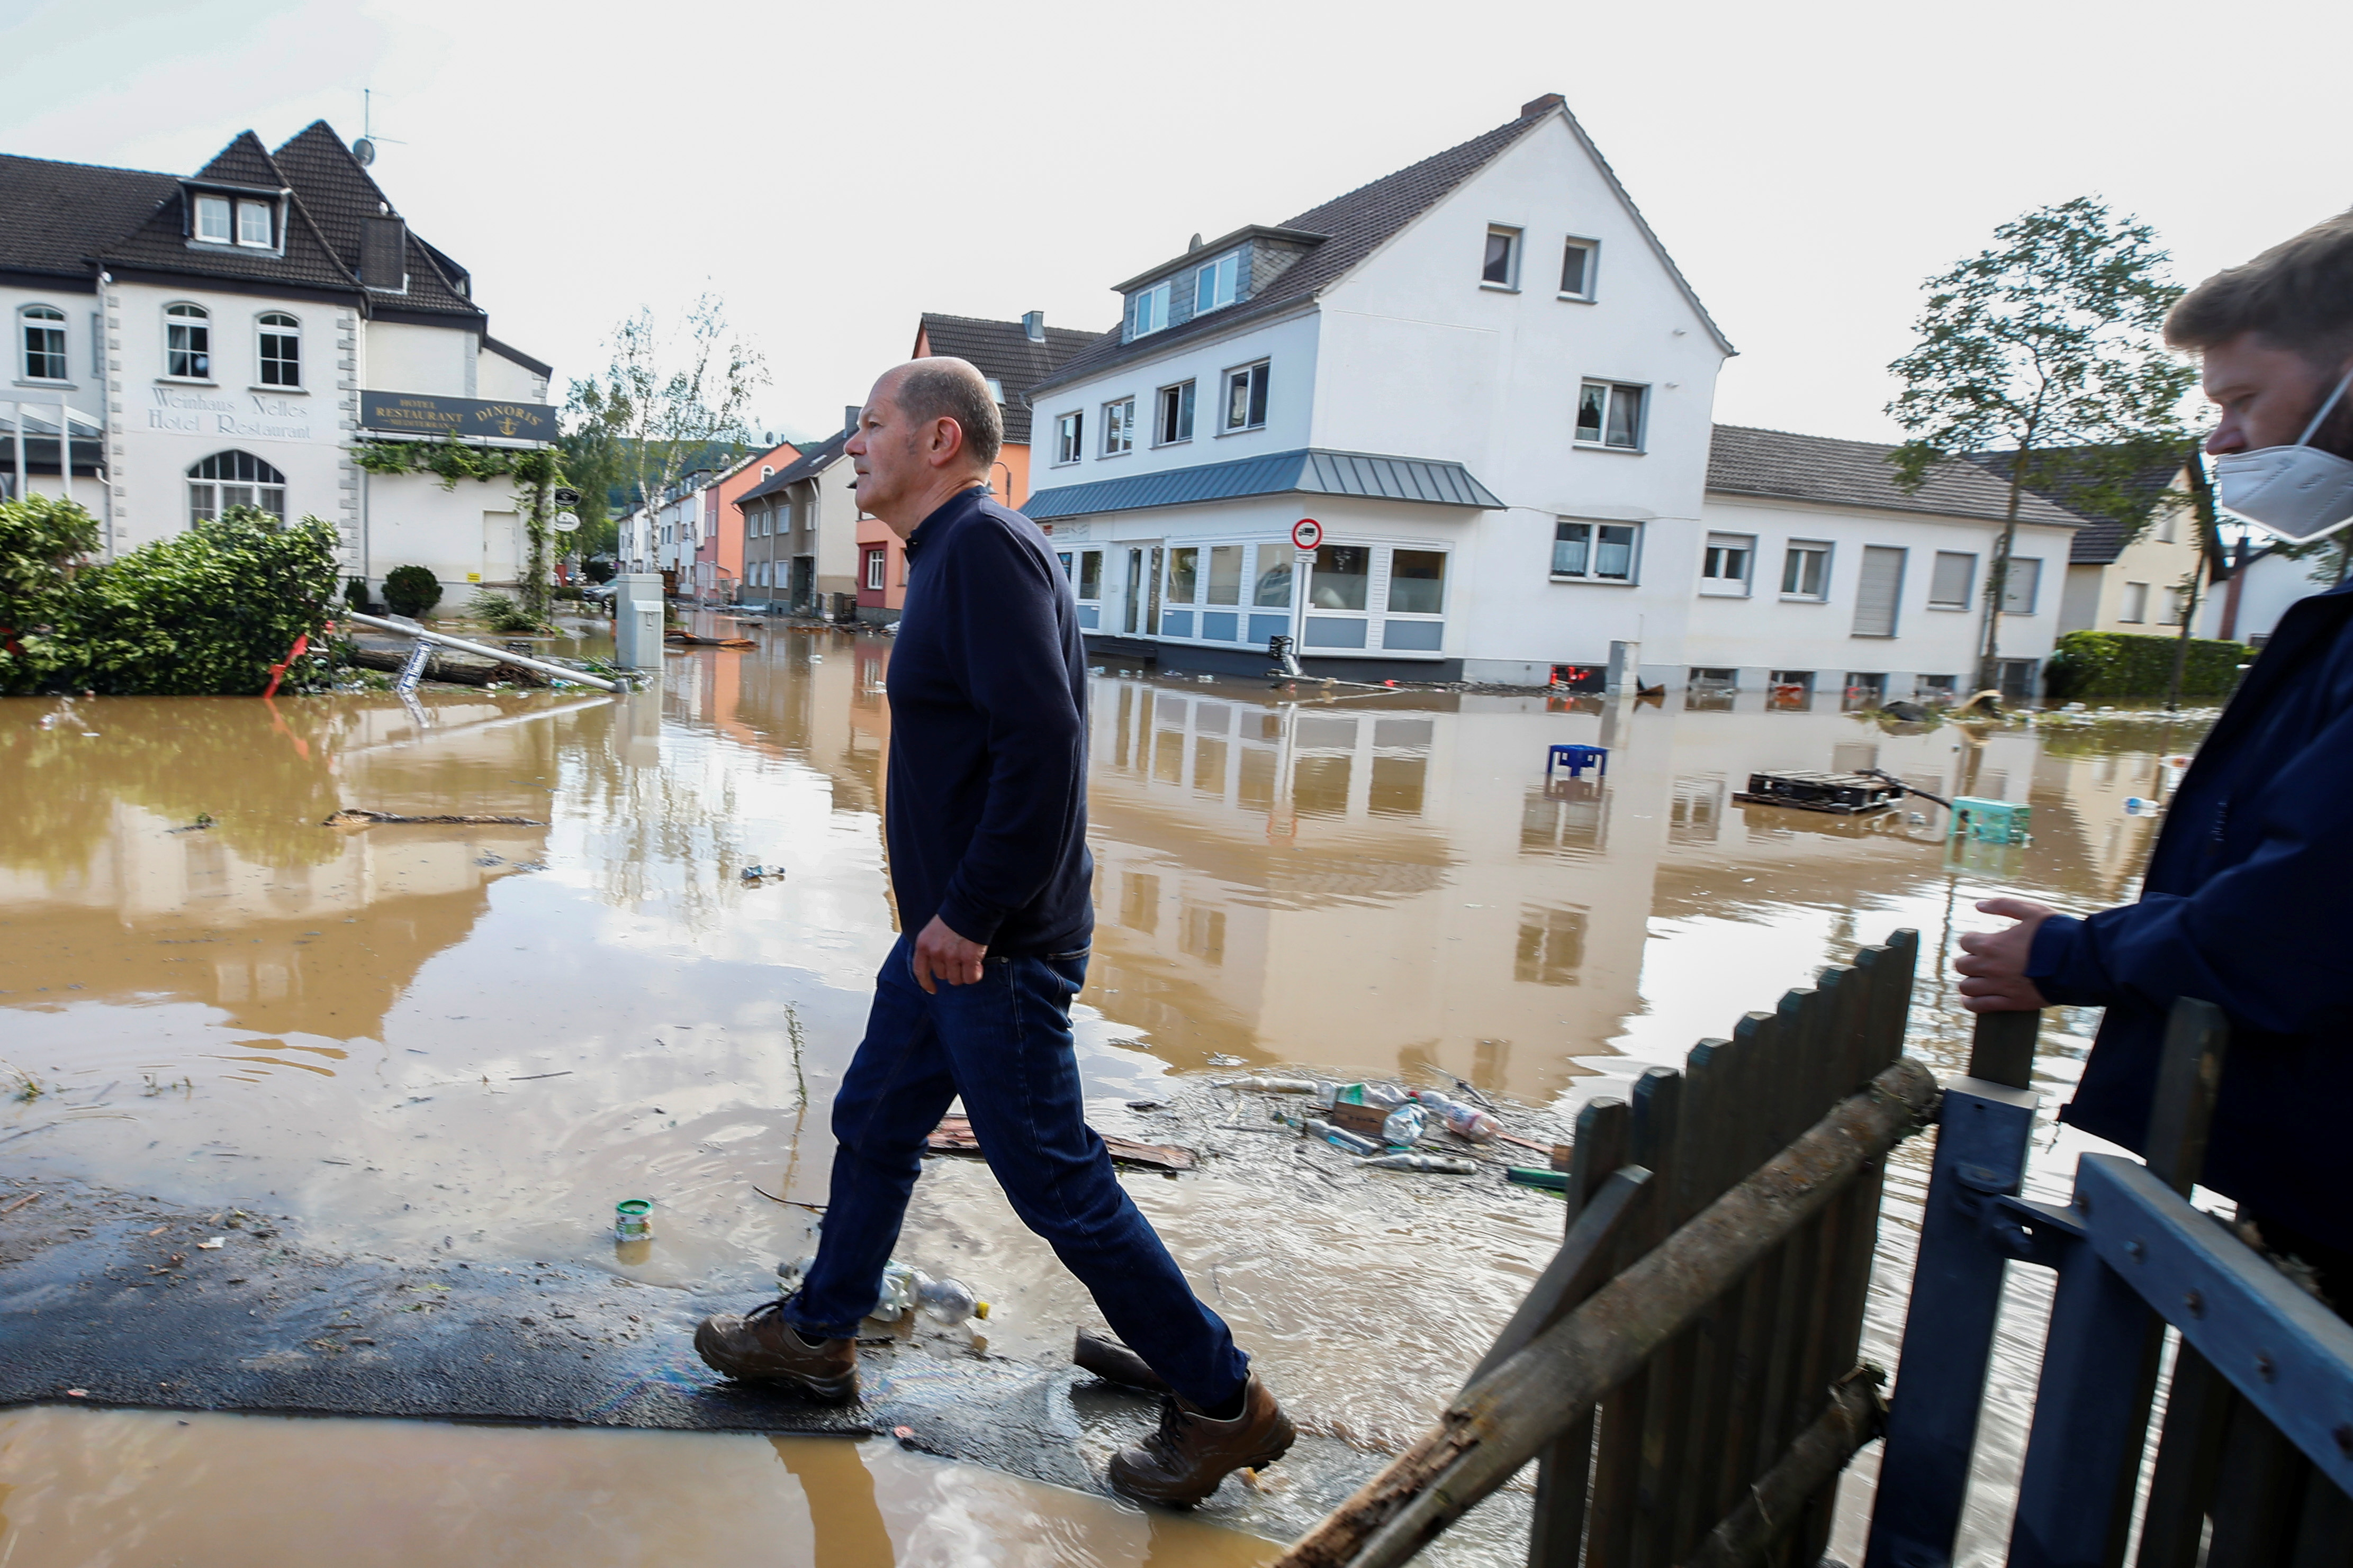 German Finance Minister Olaf Scholz visits a damaged area following heavy rainfalls in Bad Neuenahr-Ahrweiler, Germany, July 15, 2021. REUTERS/Wolfgang Rattay